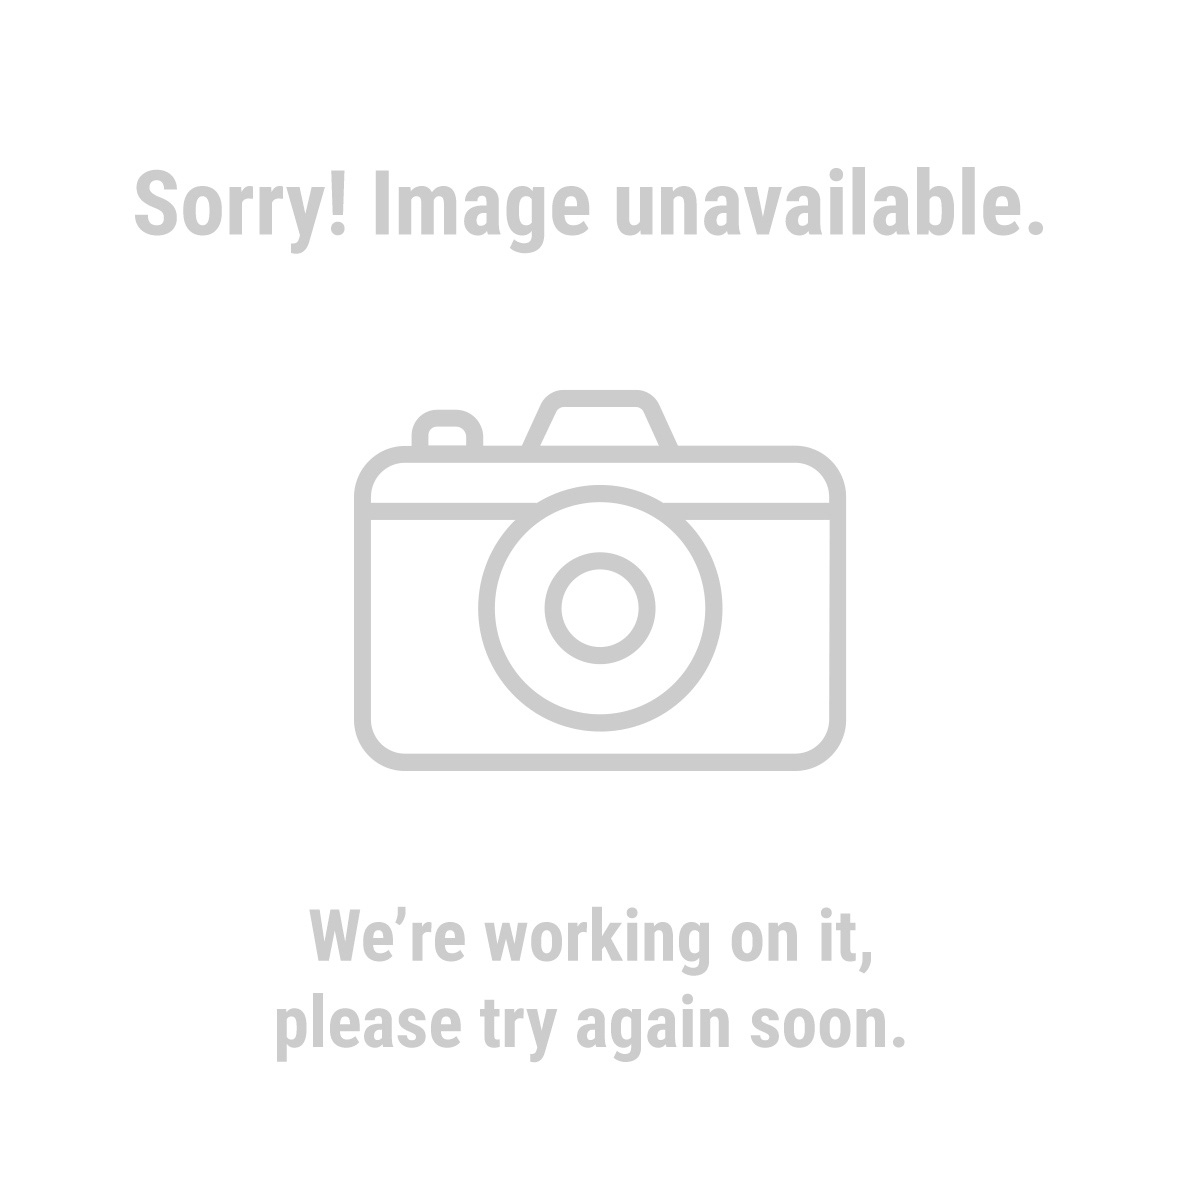 Cen-Tech 38156 50 Ft. Fish Tape